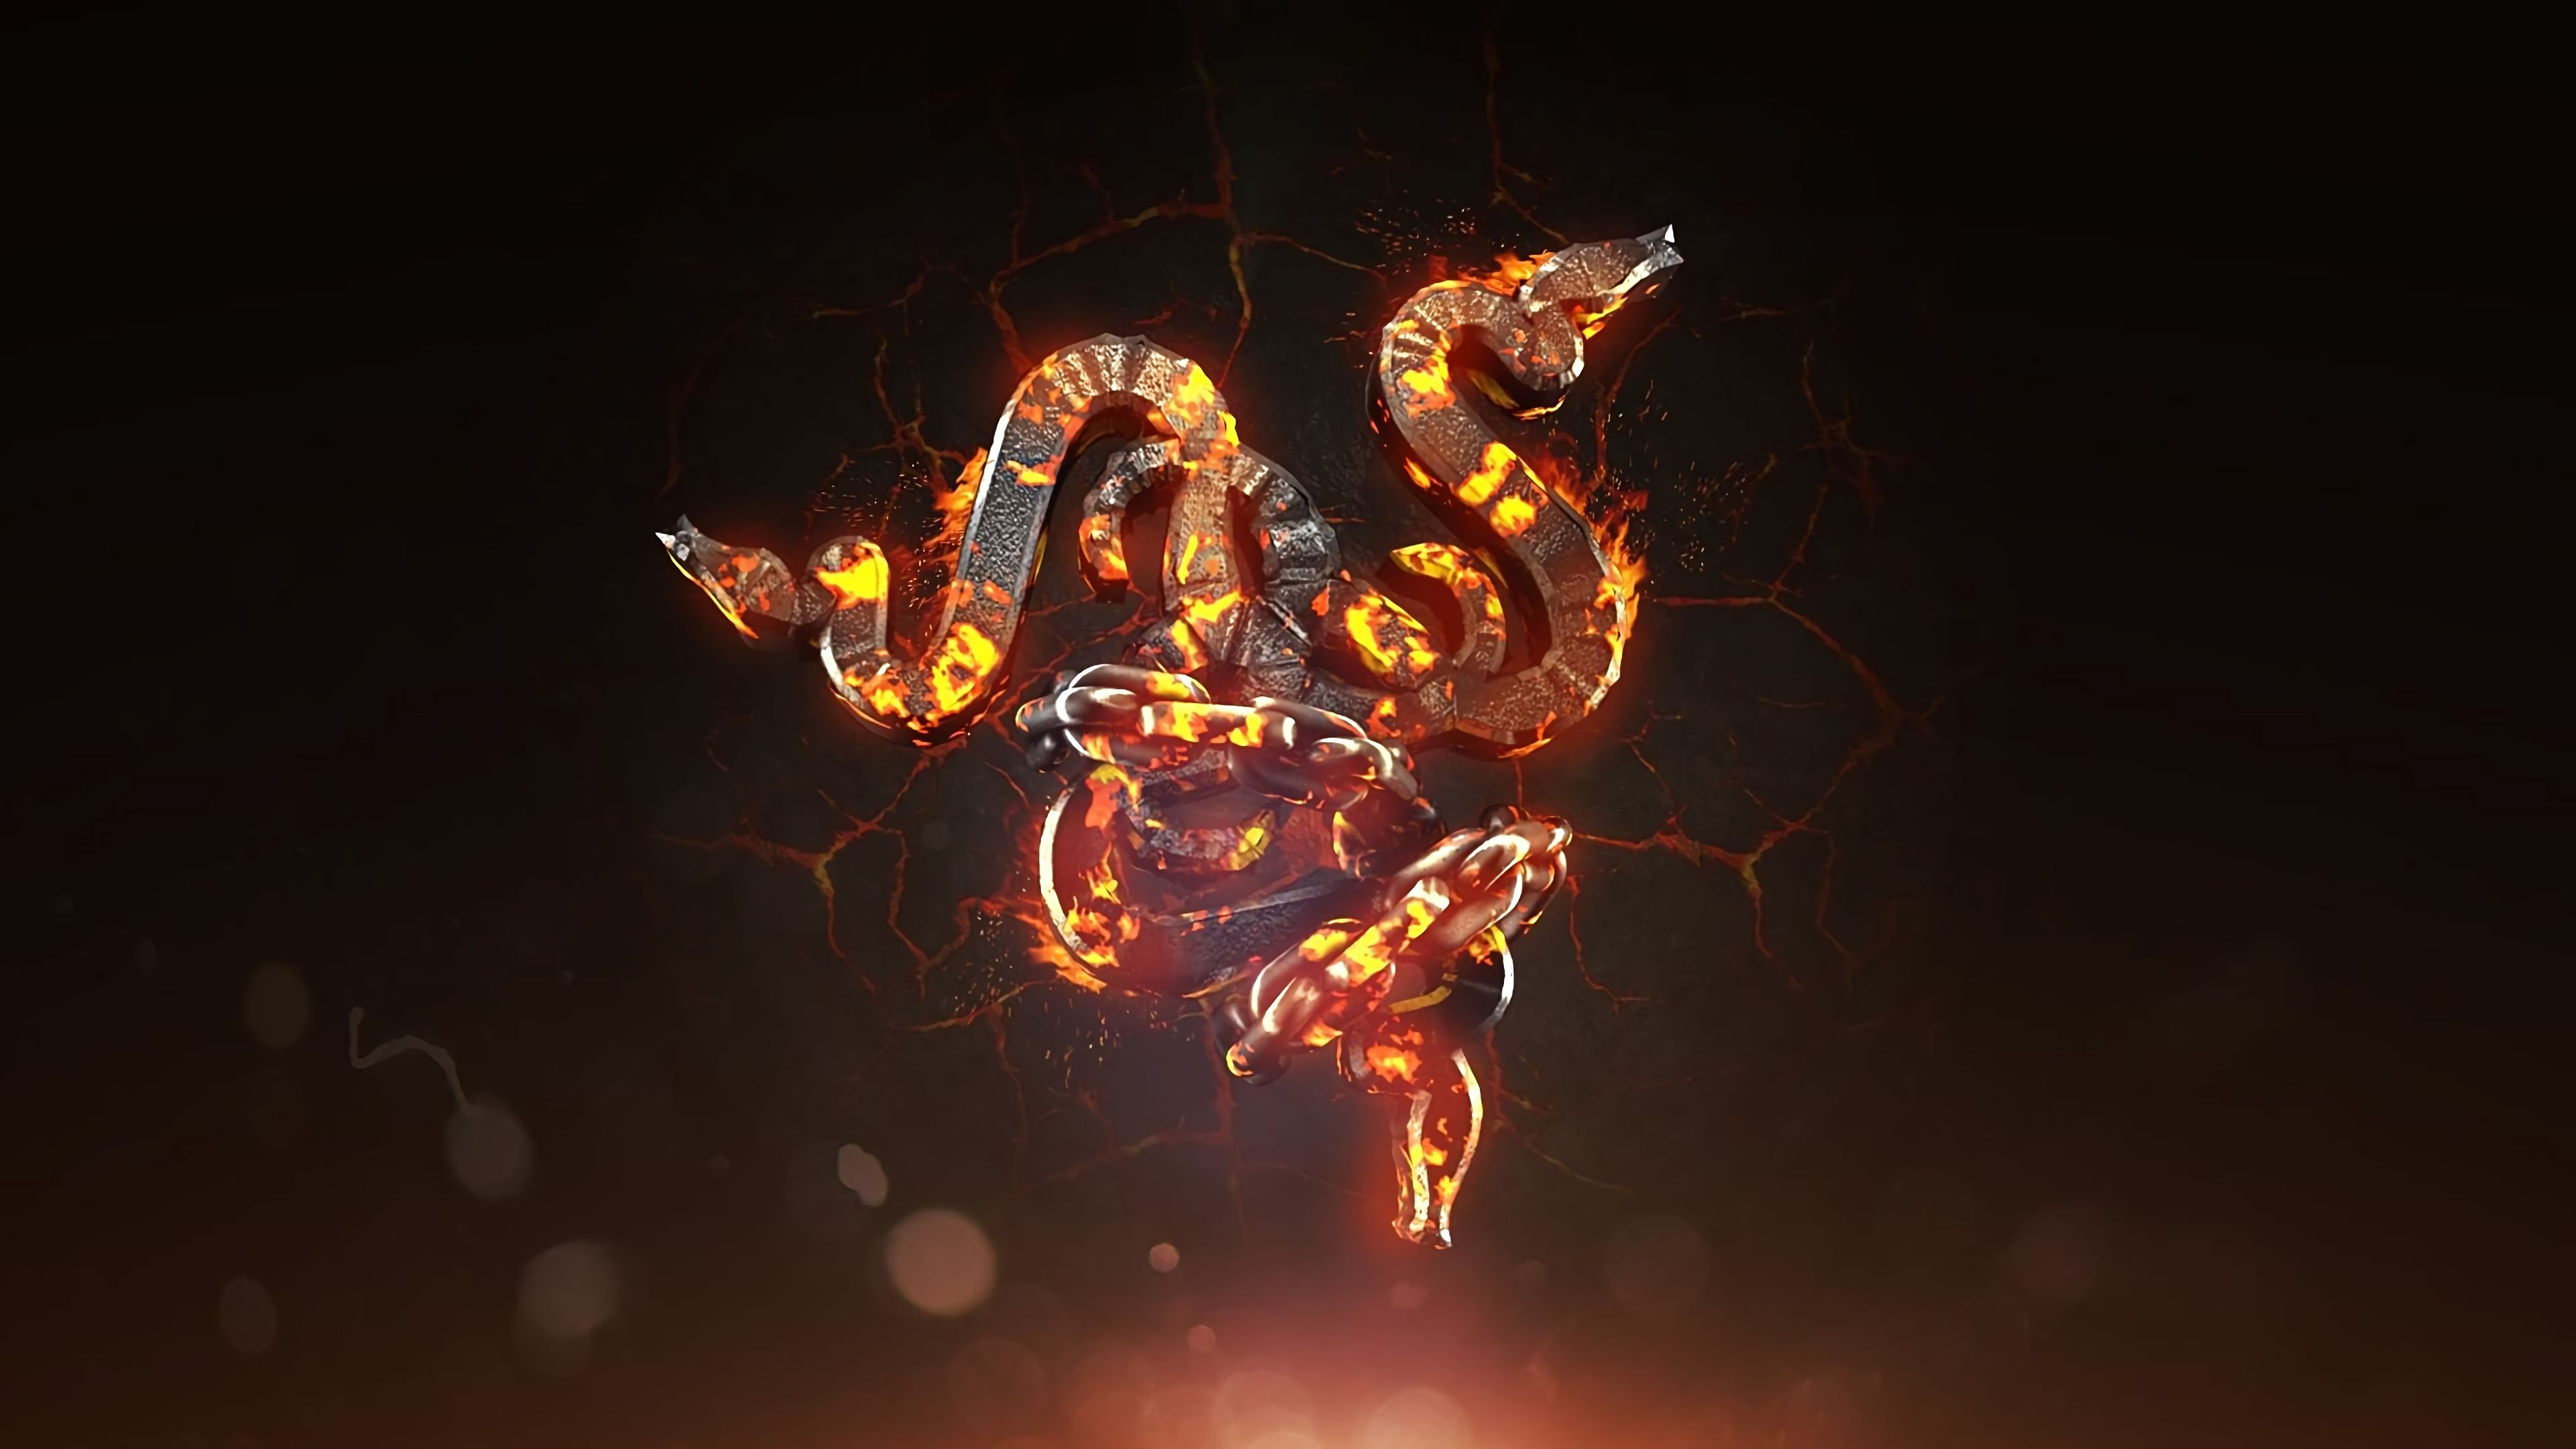 Razer Flaming Hot Logo 4k Wallpaper Desktop Wallpaper Uhd Wallpaper Black Phone Wallpaper